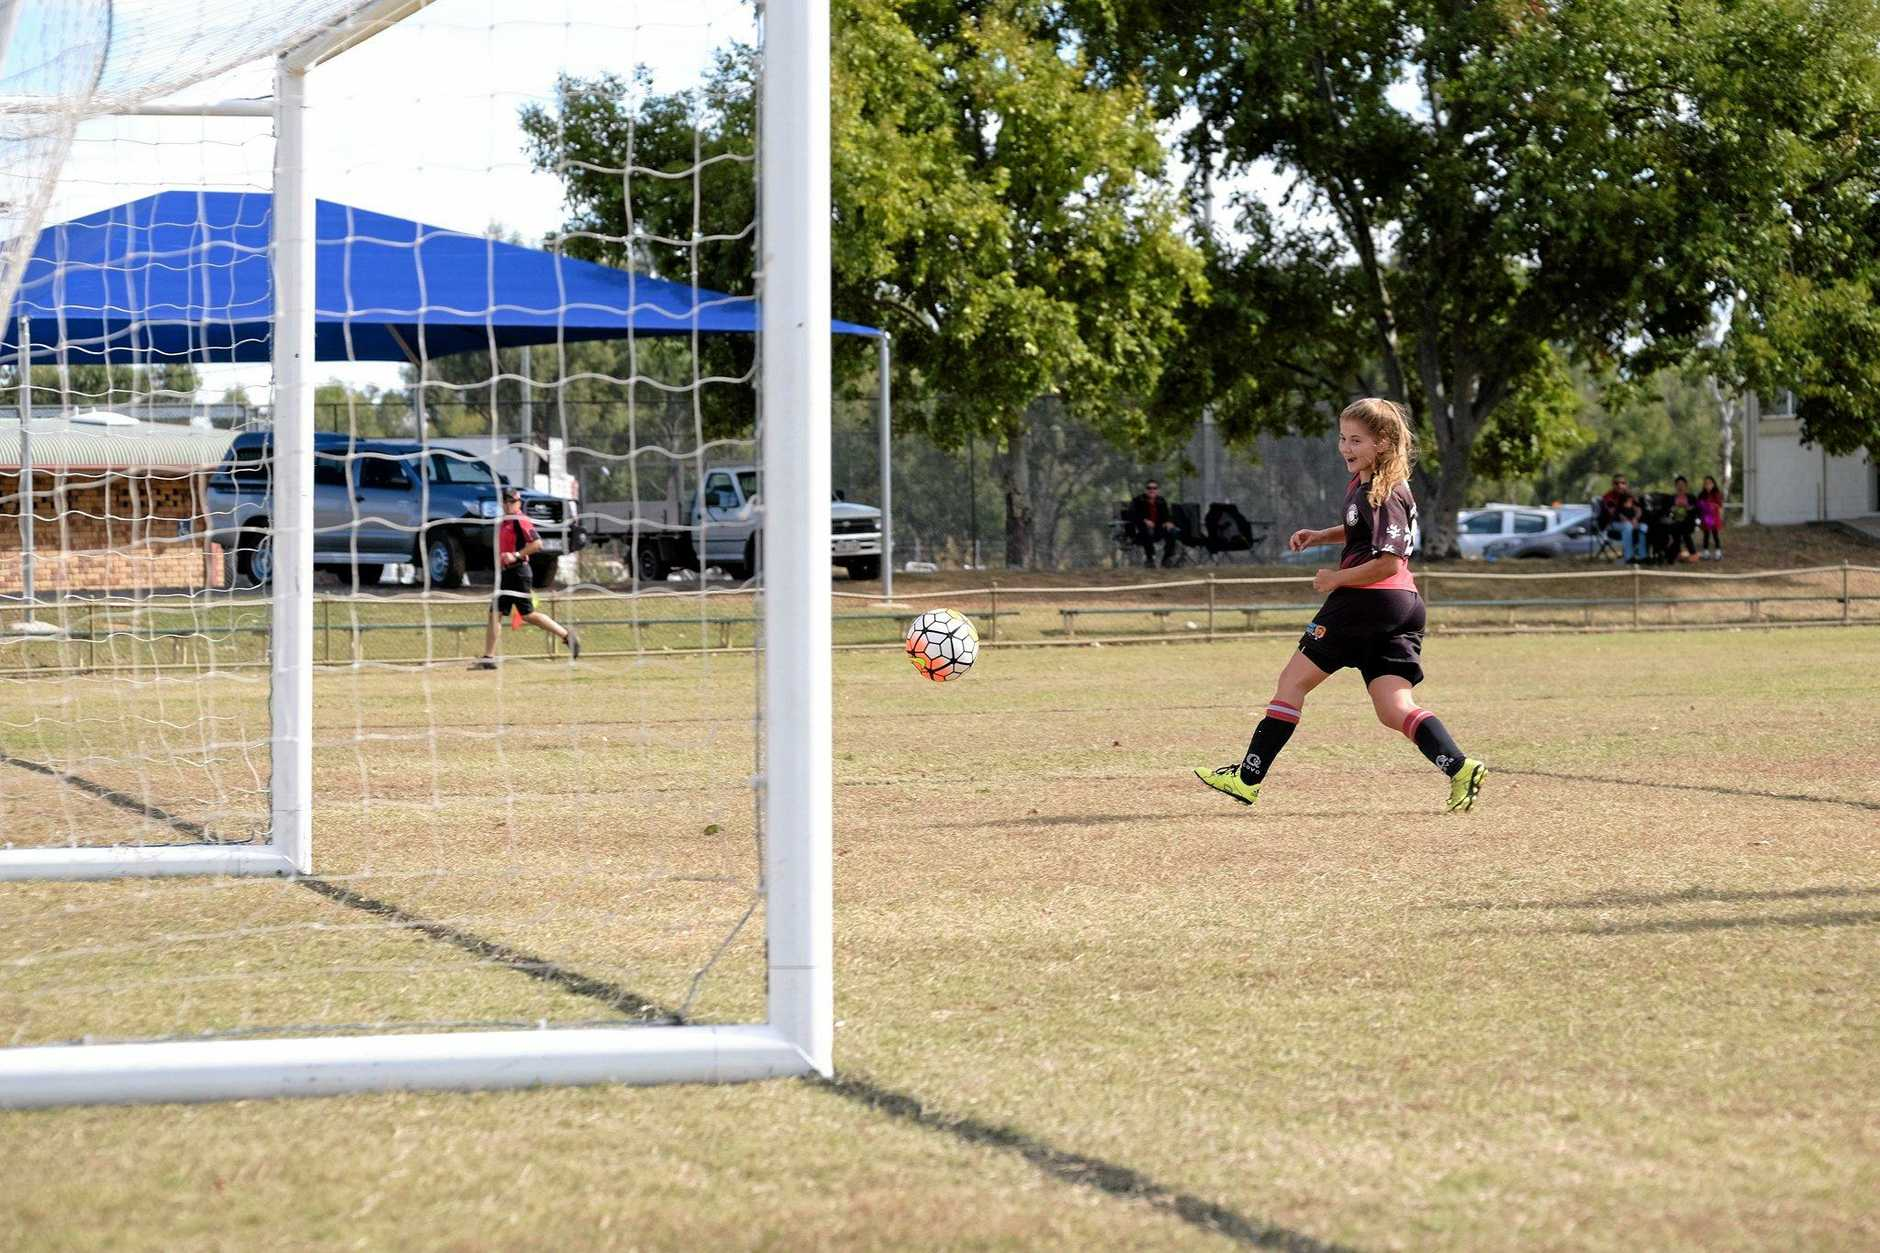 Sally Carroll scores after beating the Withcott goal keeper during the Honeybears v Pink Panthers match in Chinchilla on Sunday. 29/05/16